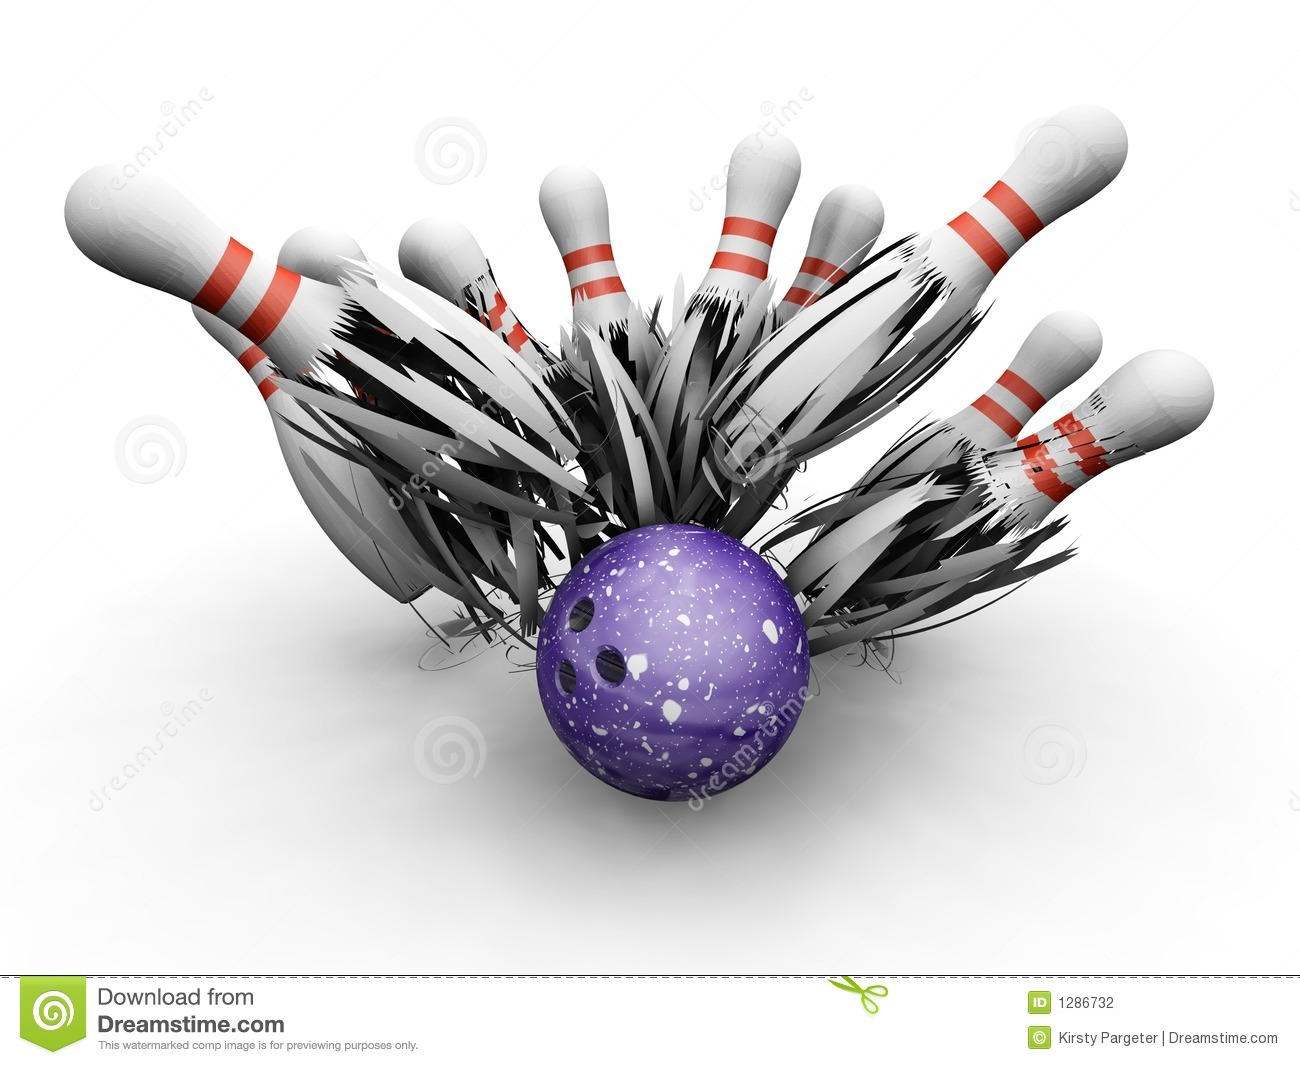 Bowling Ball Smashing Into Pins Stock Photography - Image: 1286732